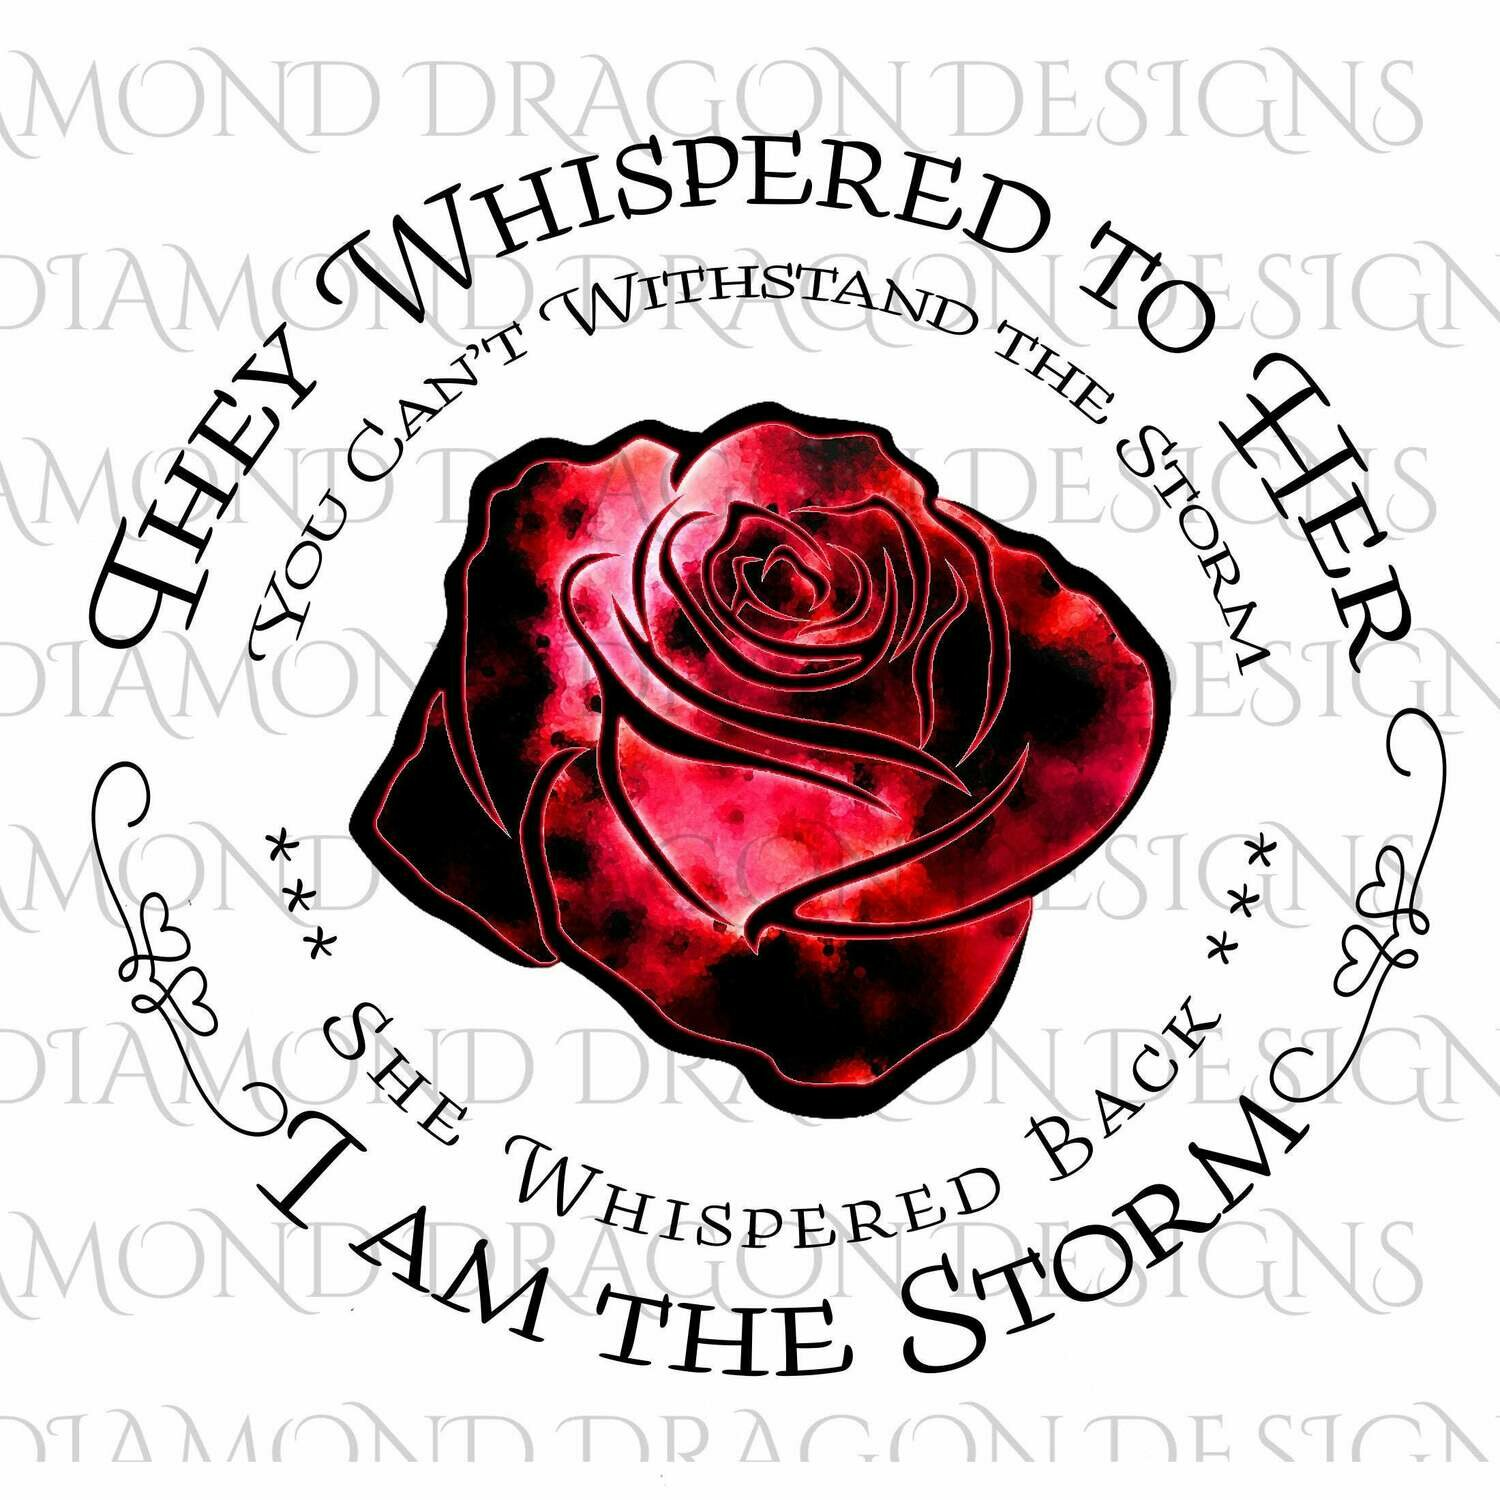 Flowers - They Whispered to Her, Cannot Withstand the Storm, I am the Storm, Quote, Red Galaxy, Rose, Watercolor, Digital Image